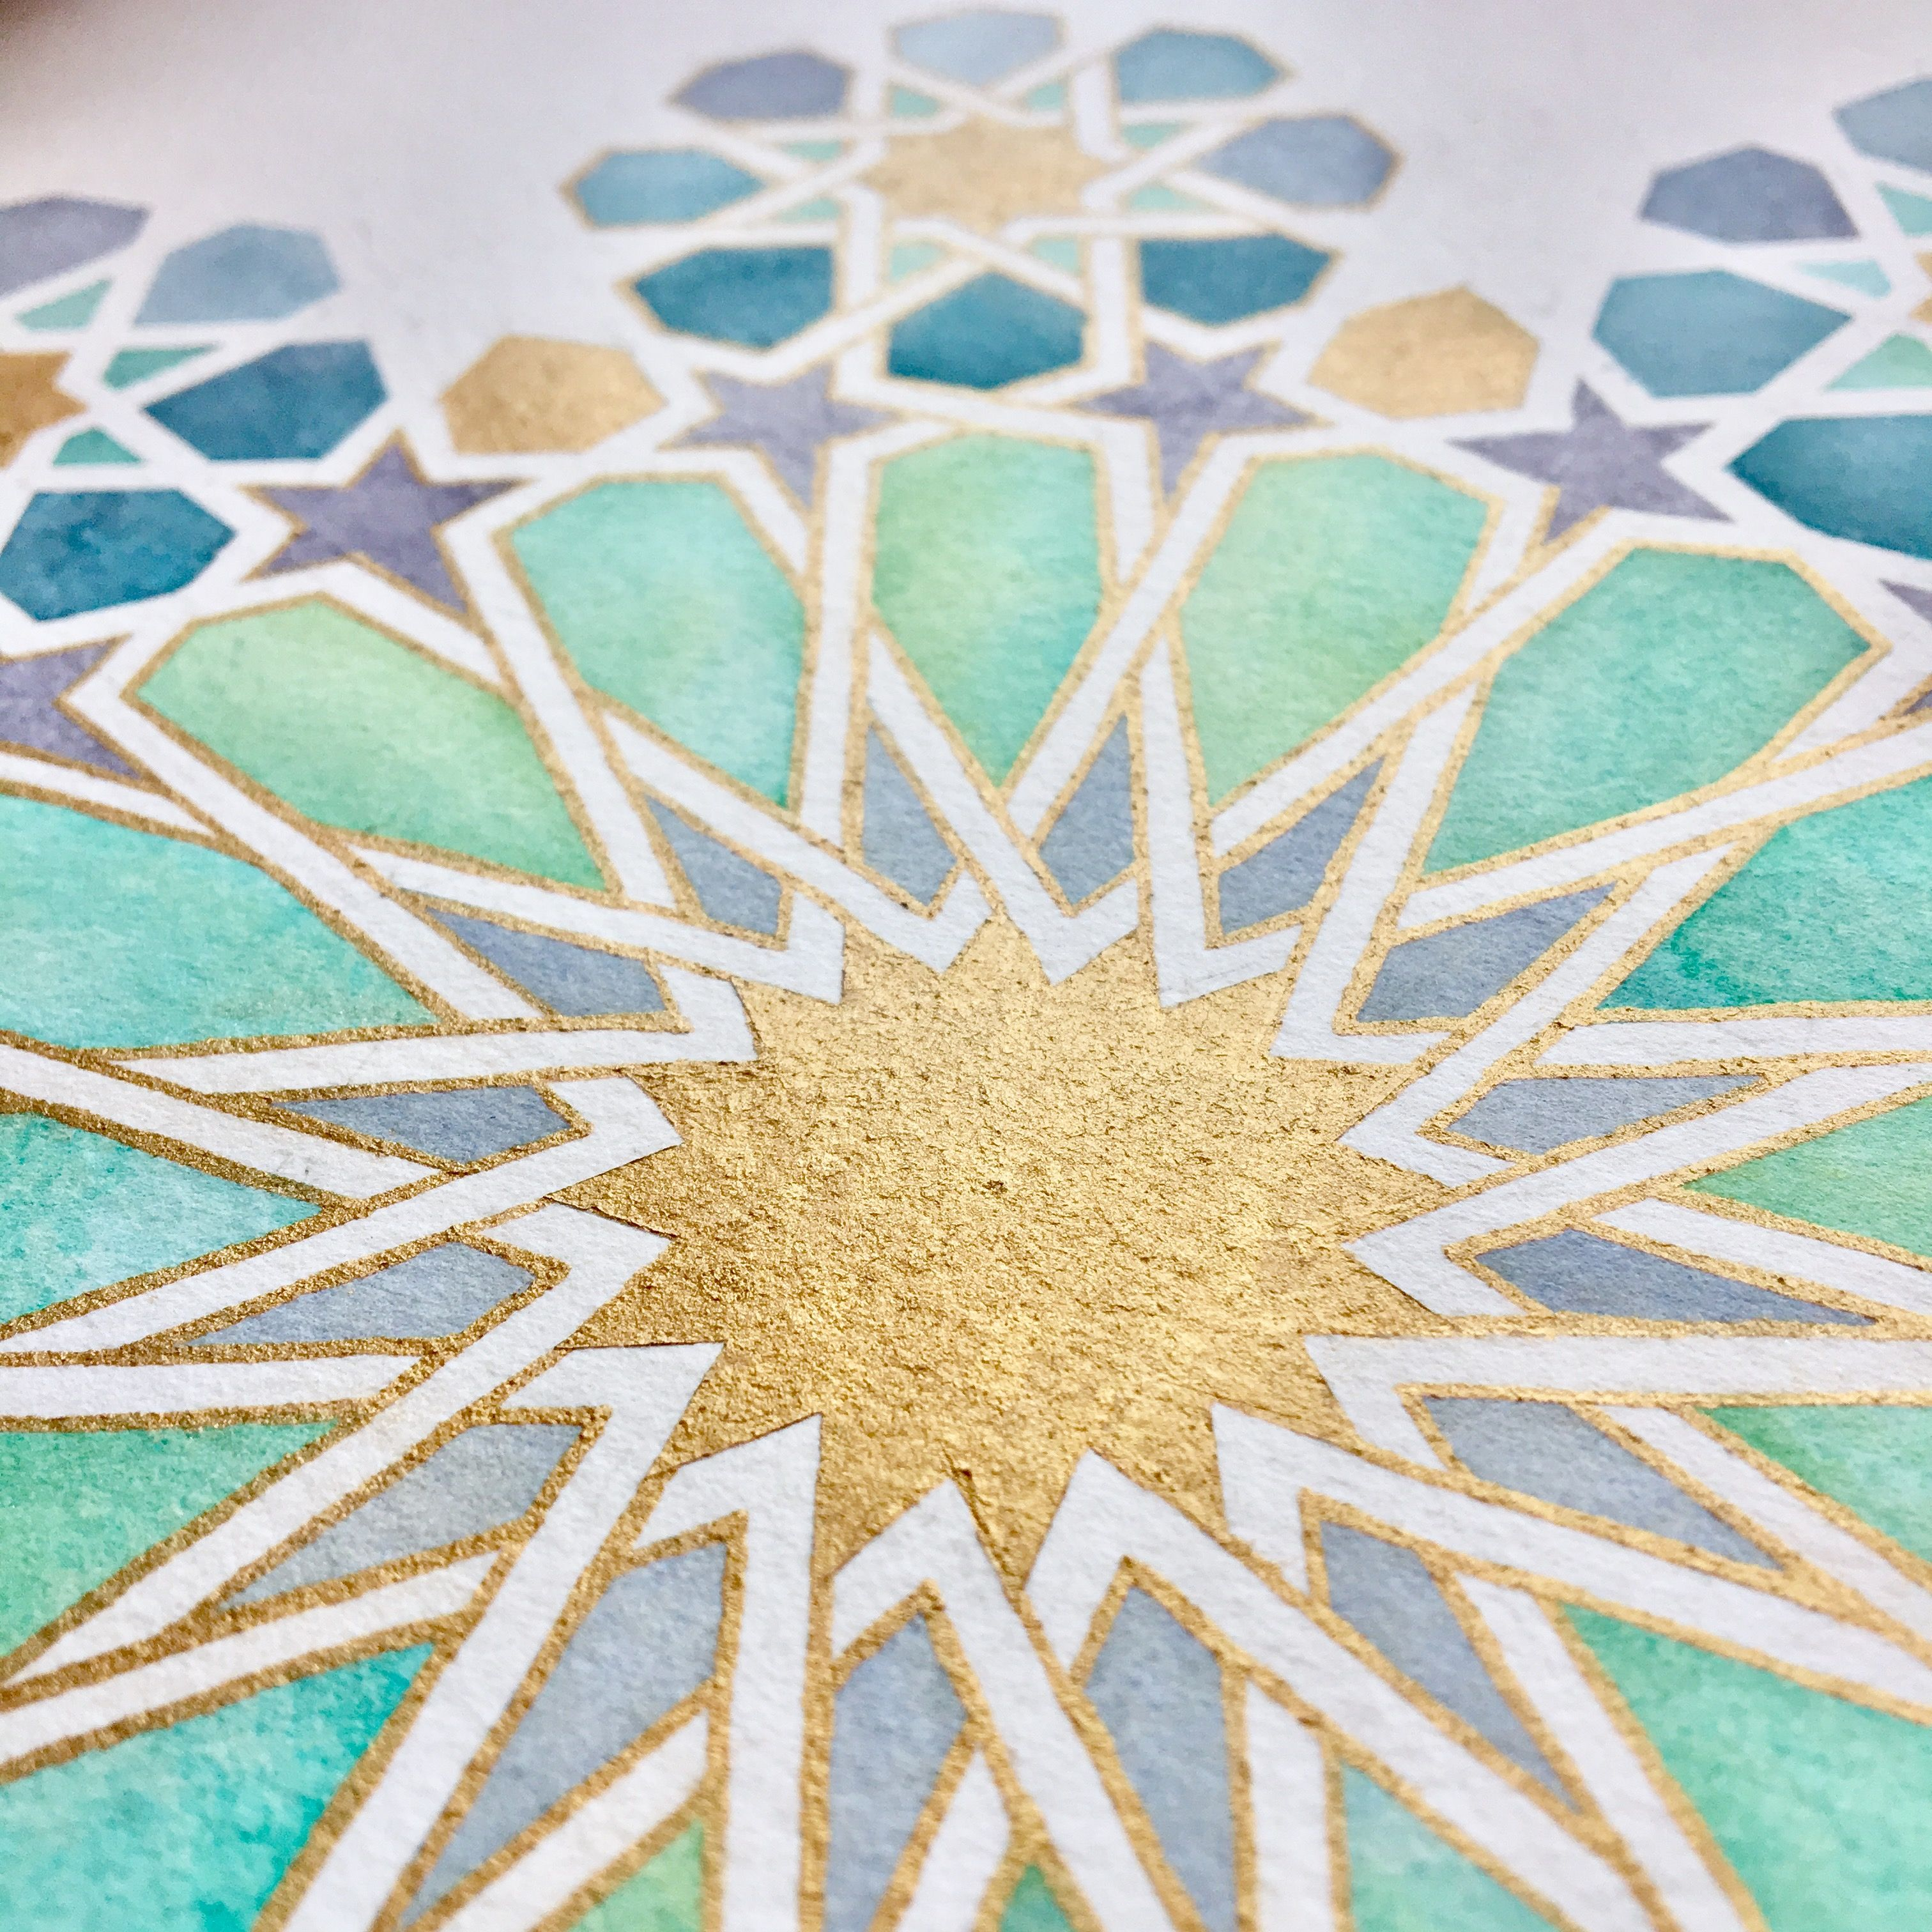 Islamic Geometric Pattern Workshop | Events | King County Library System